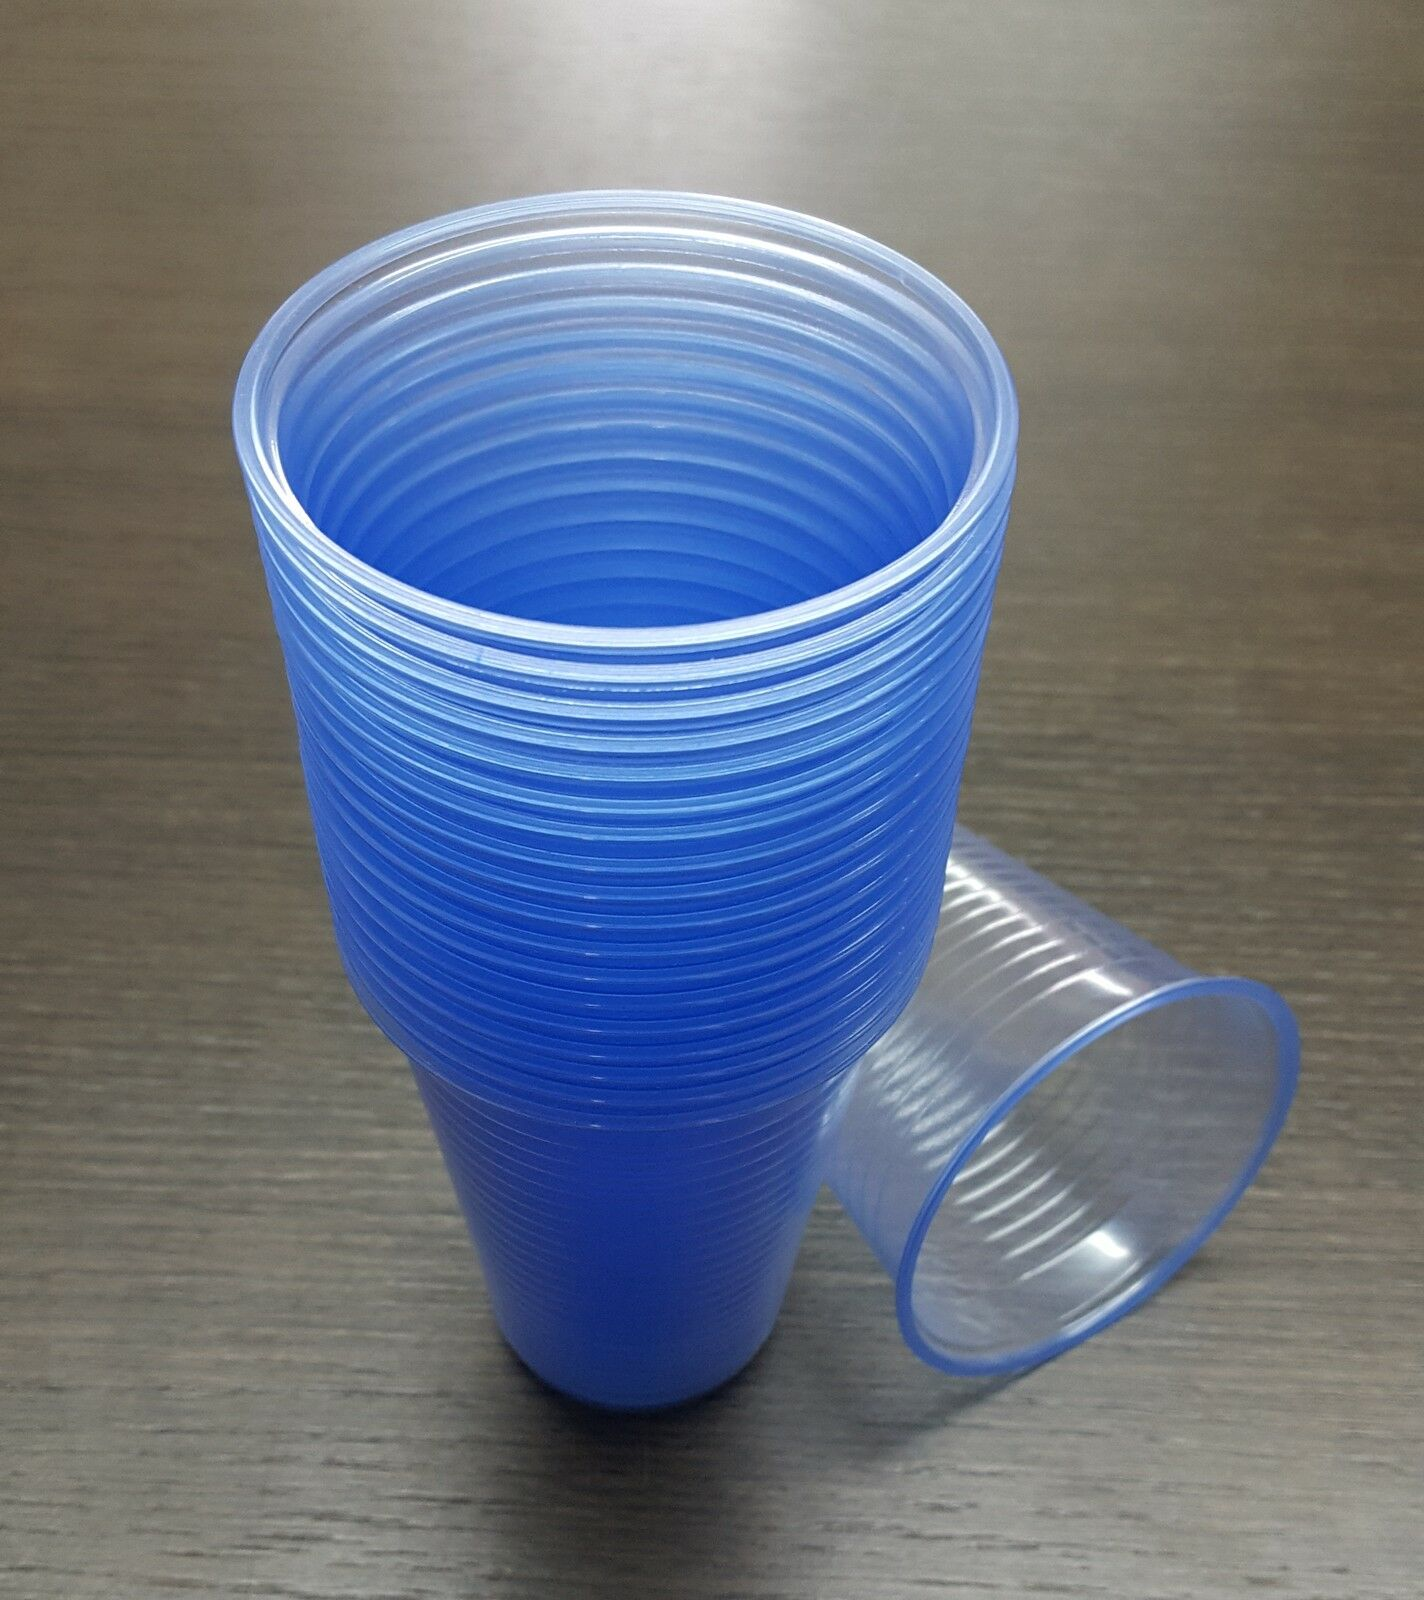 7oz Blau Plastic Plastic Plastic Disposable Cups for Dispencer party cups Strong 'Special Offer' 41725f